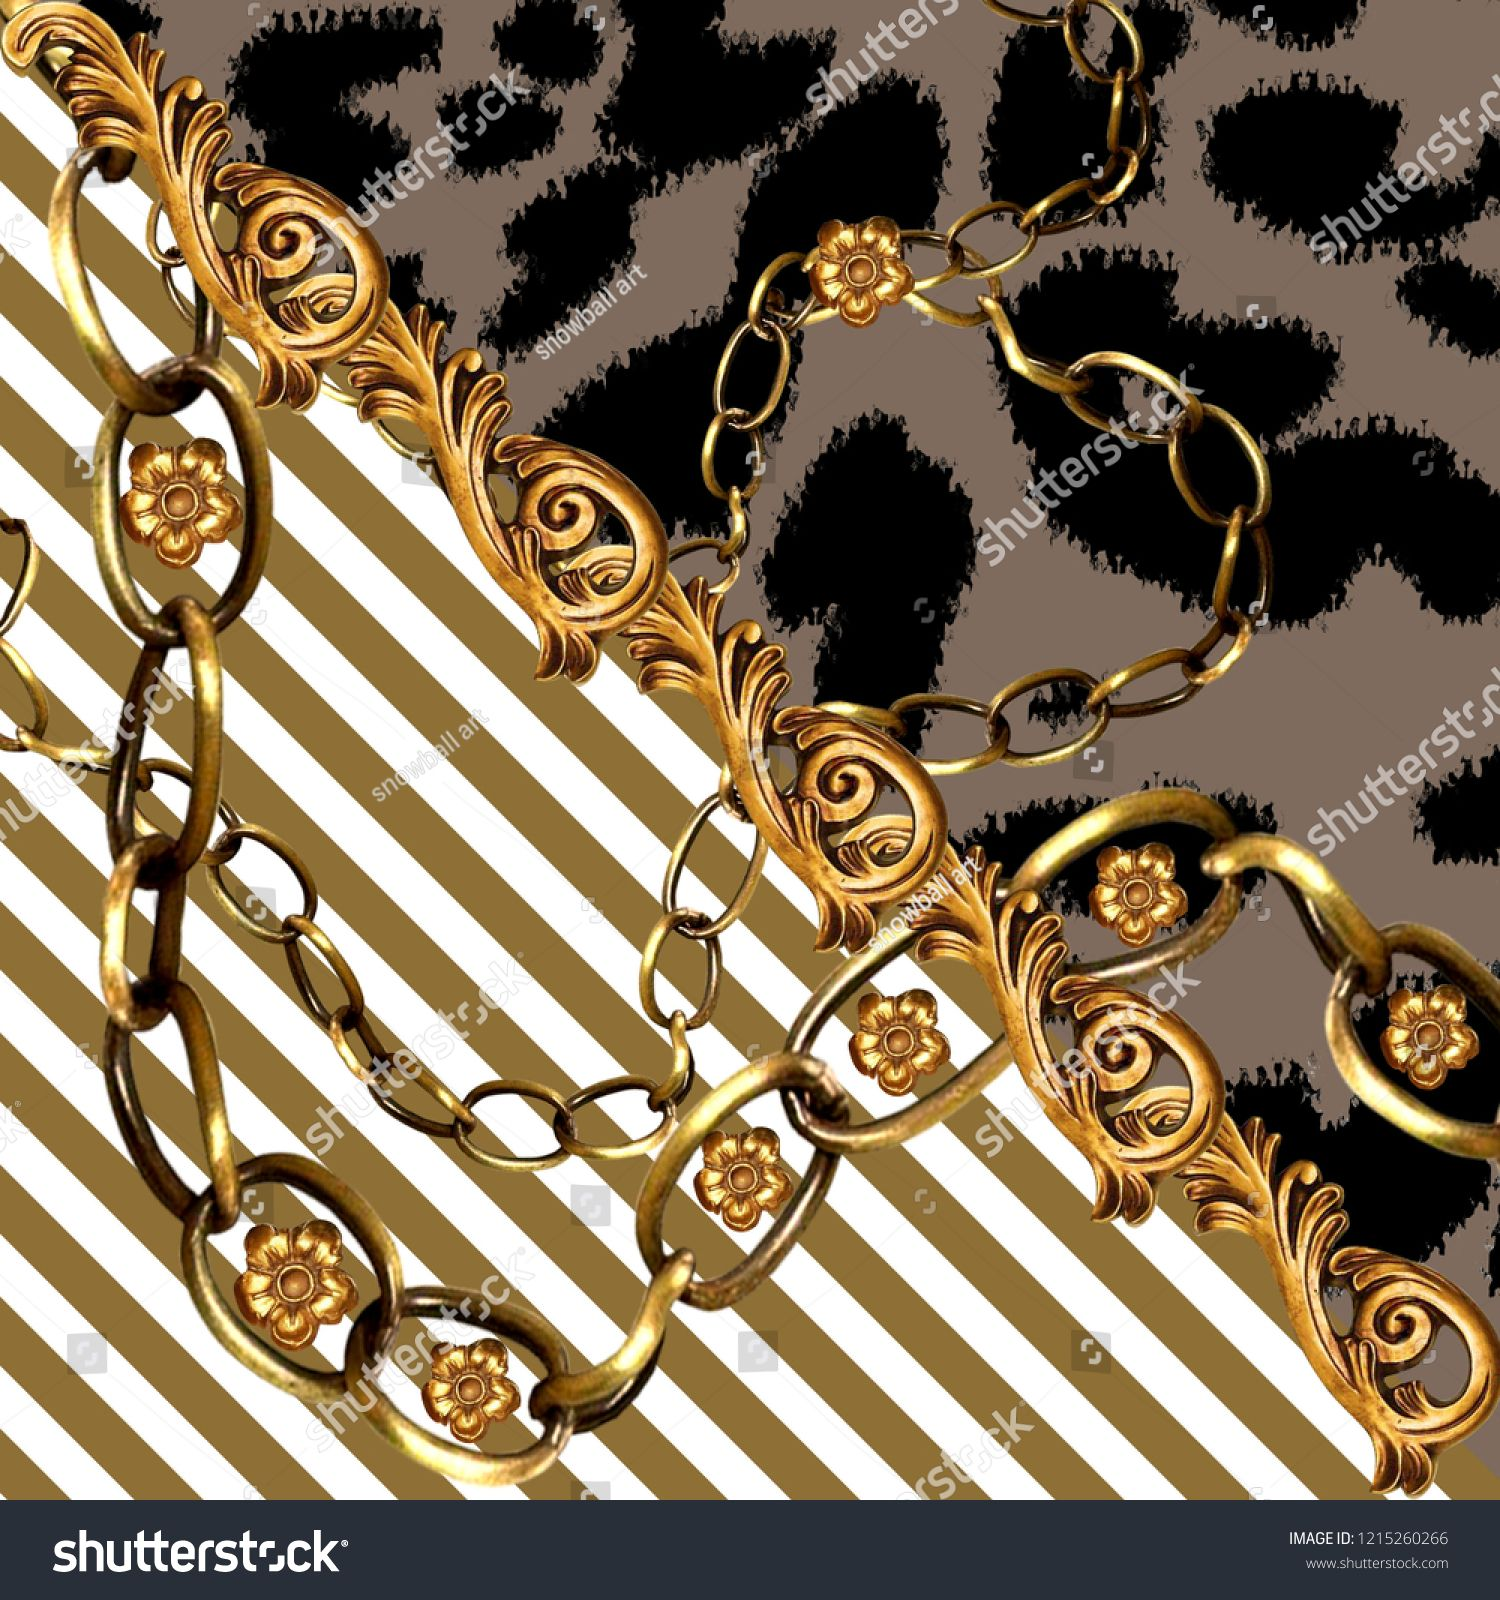 leopard skin and golden chain background, scarf pattern